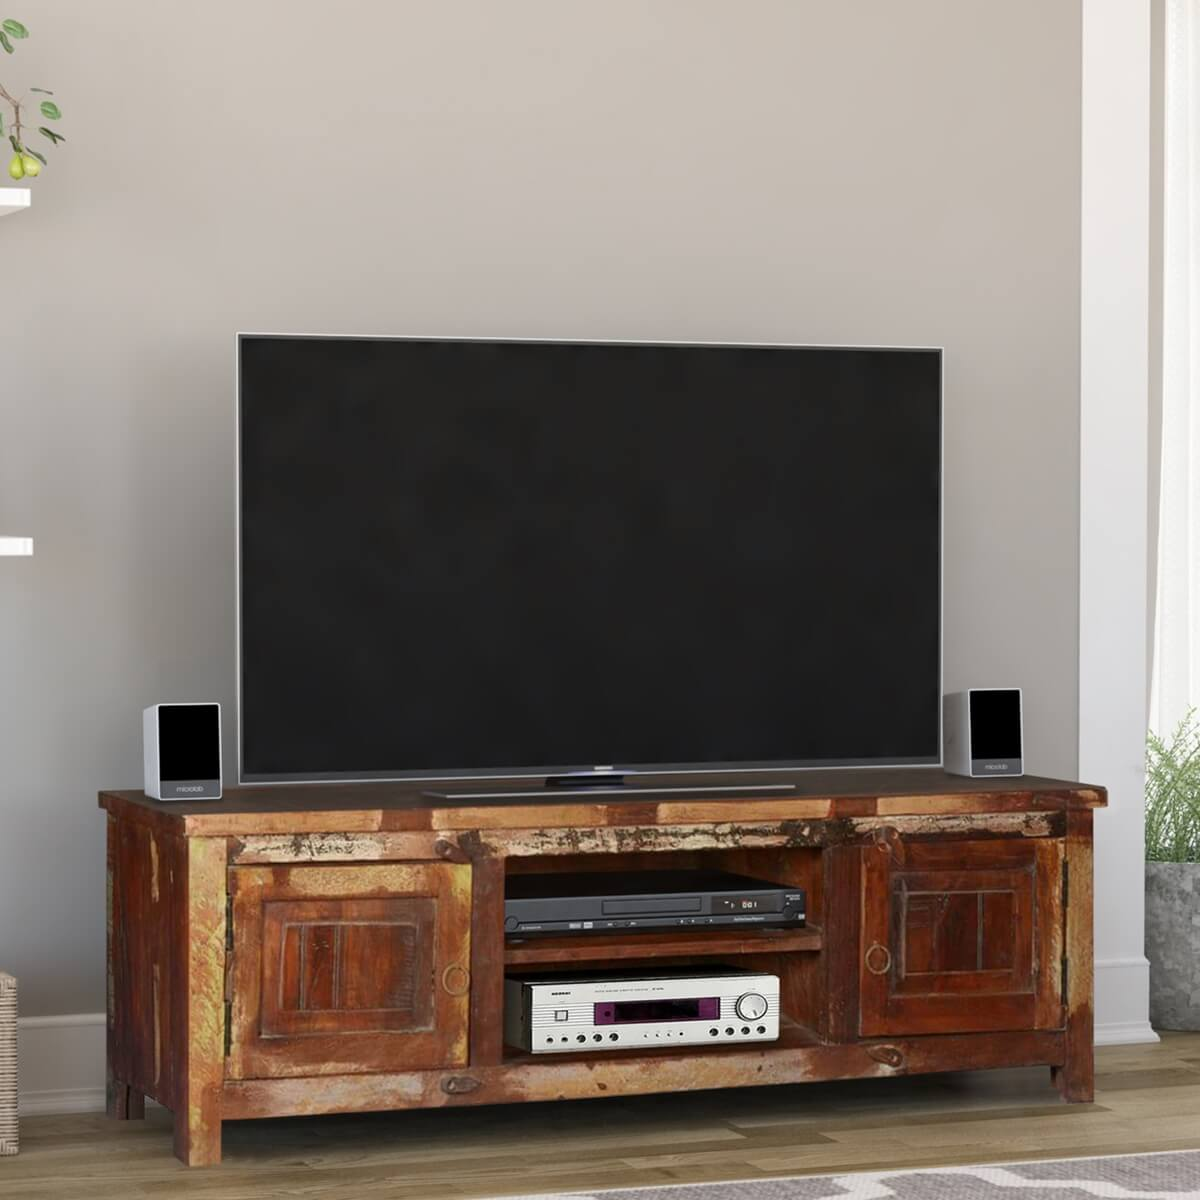 Magnificent Old Chicago Rustic Reclaimed Wood Tv Console Media Cabinet Download Free Architecture Designs Grimeyleaguecom